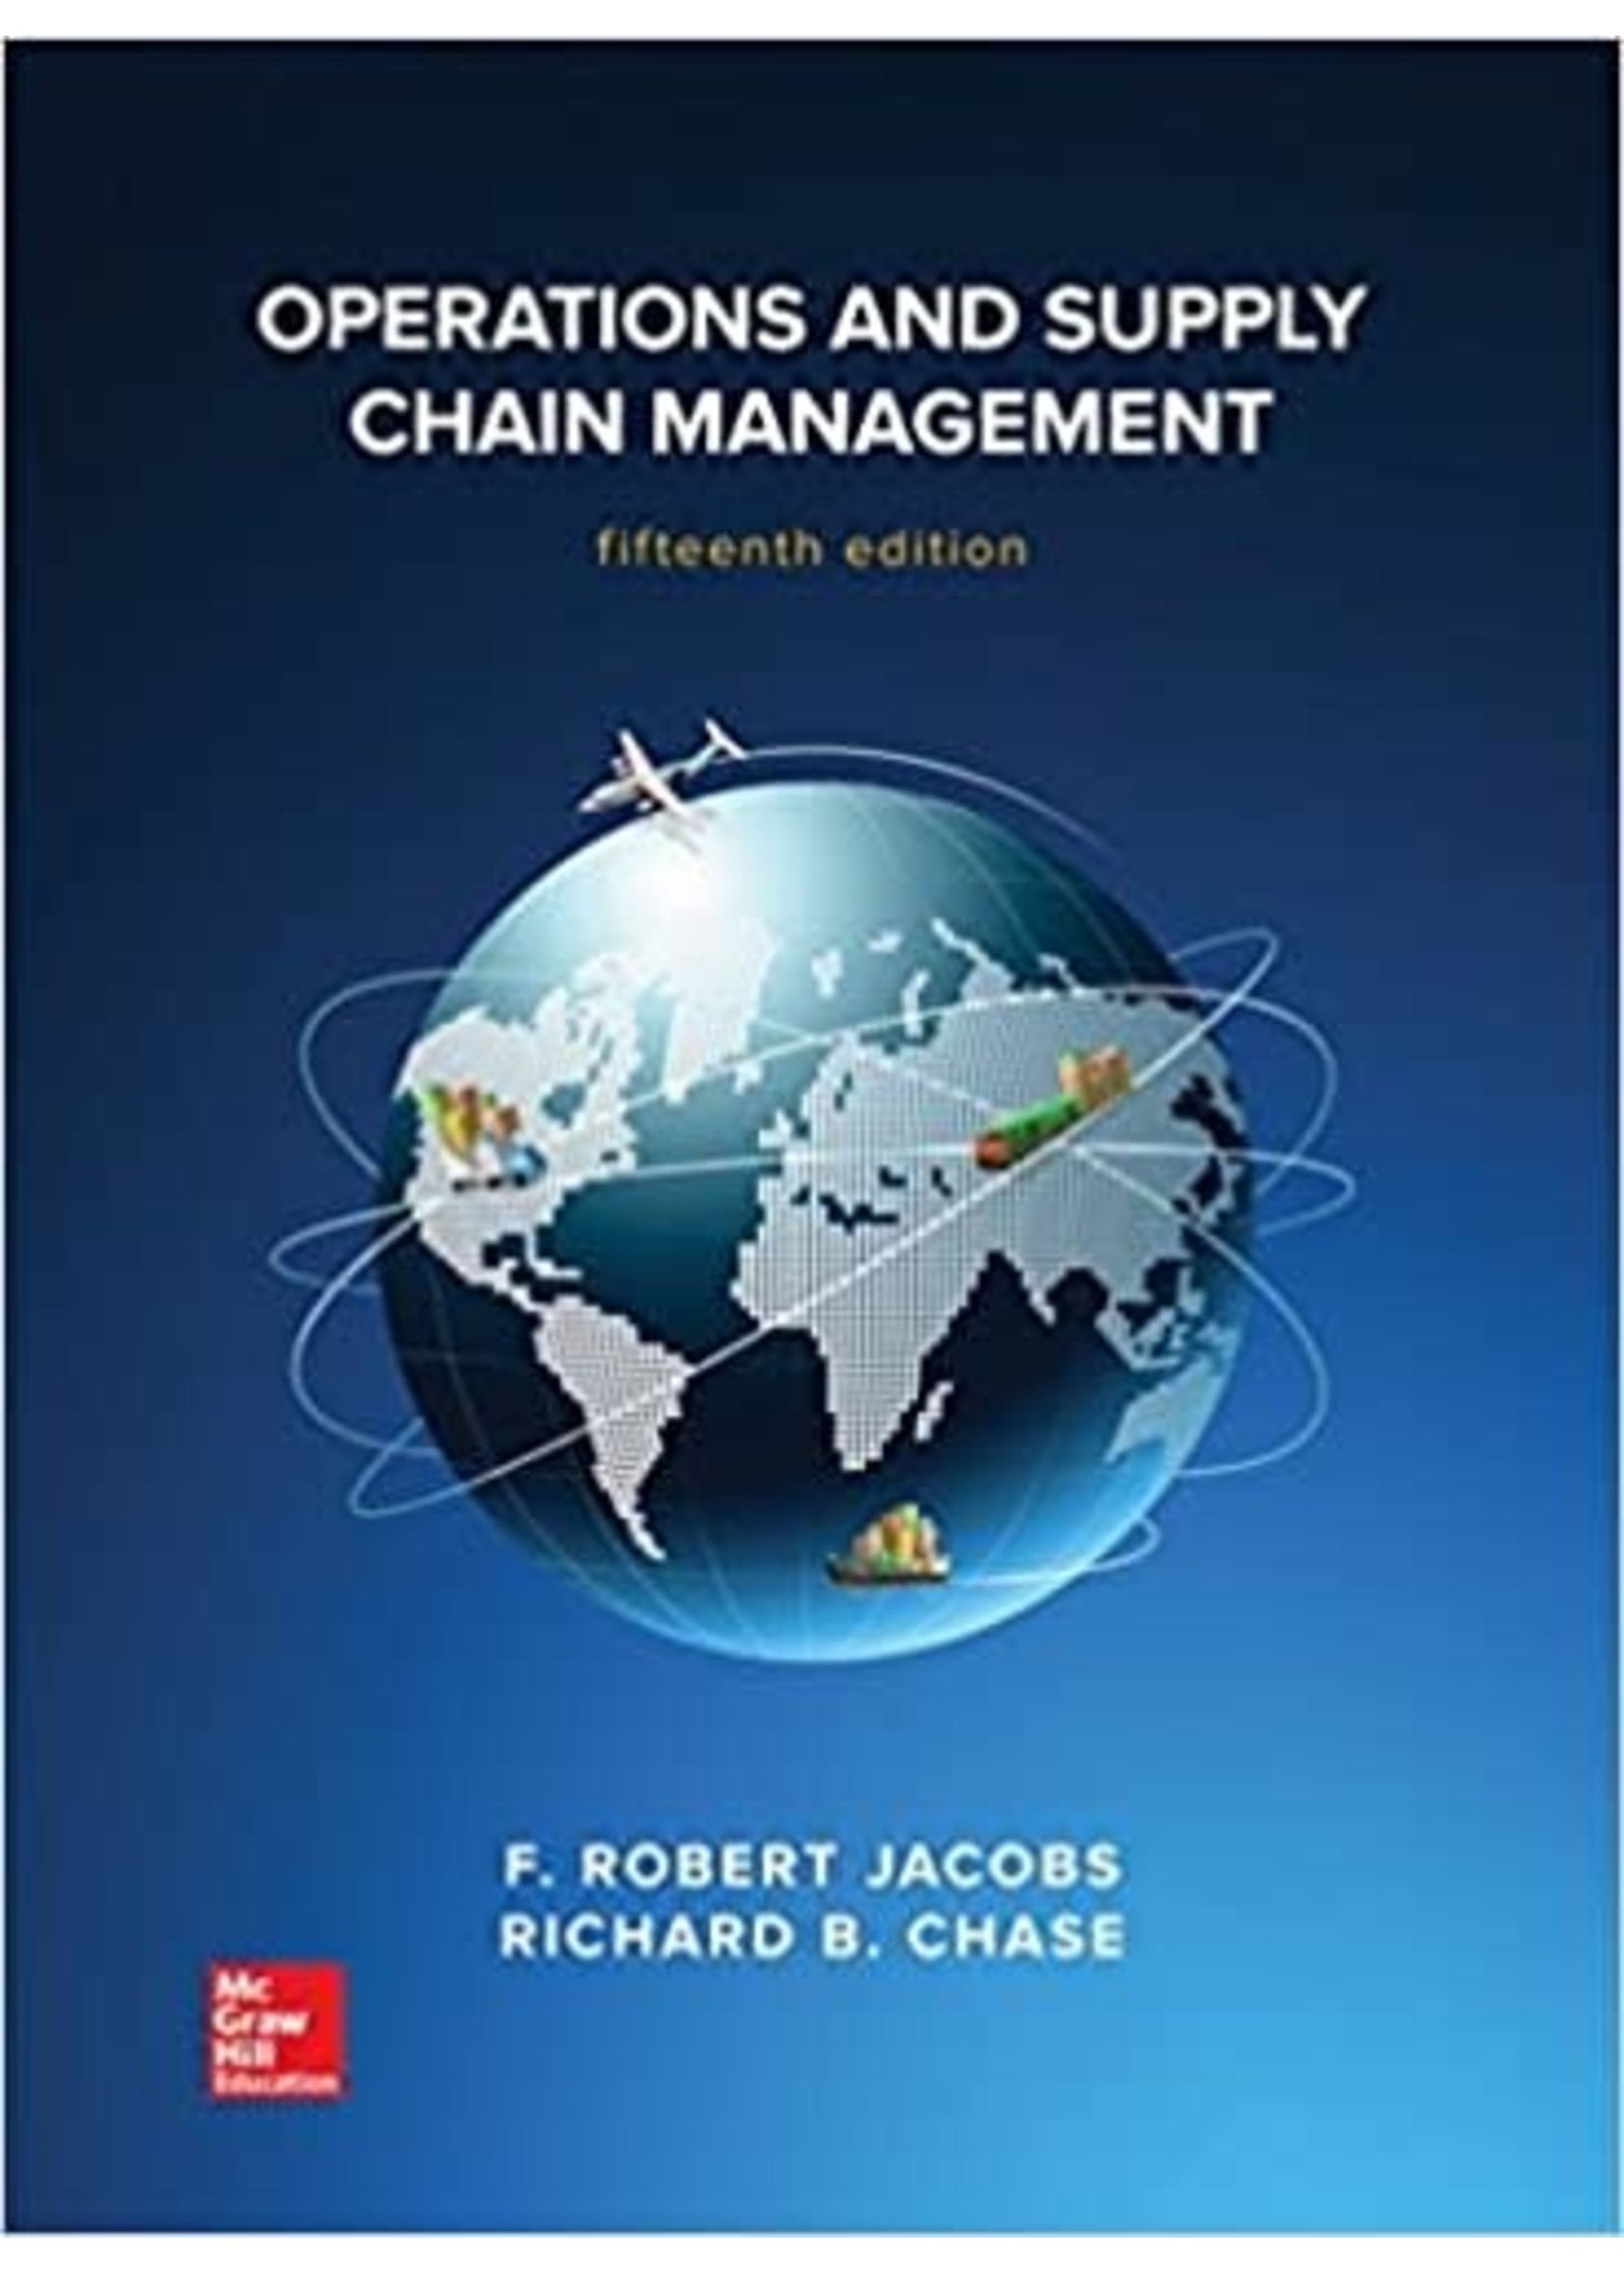 QM363 OPERATIONS:SUPPLY CHAIN MGMT (RENTAL)